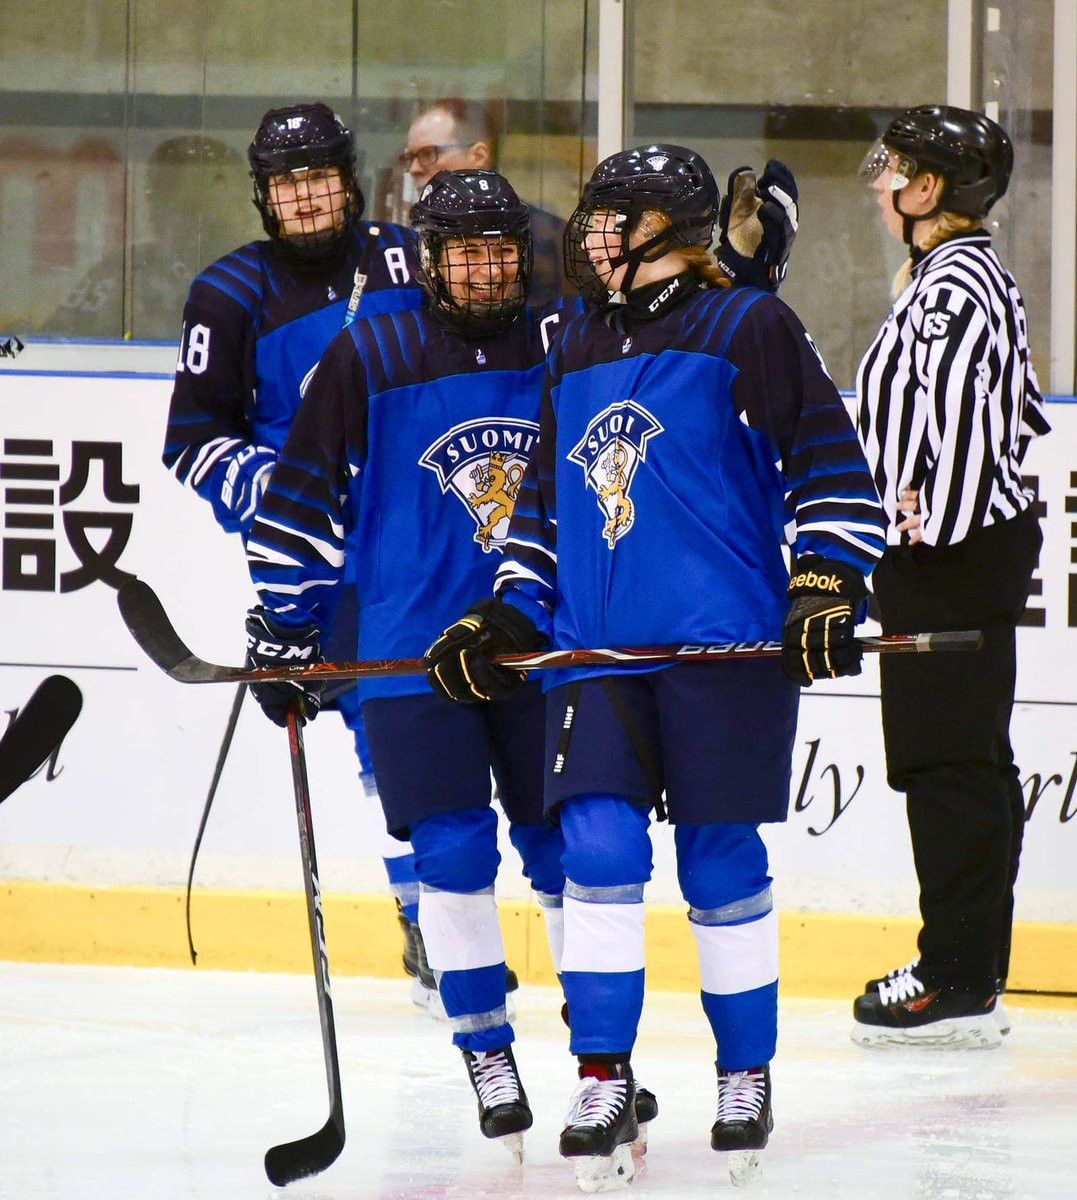 Finland to play defending champions United States in IIHF Under-18 Women's World Championship semi-final